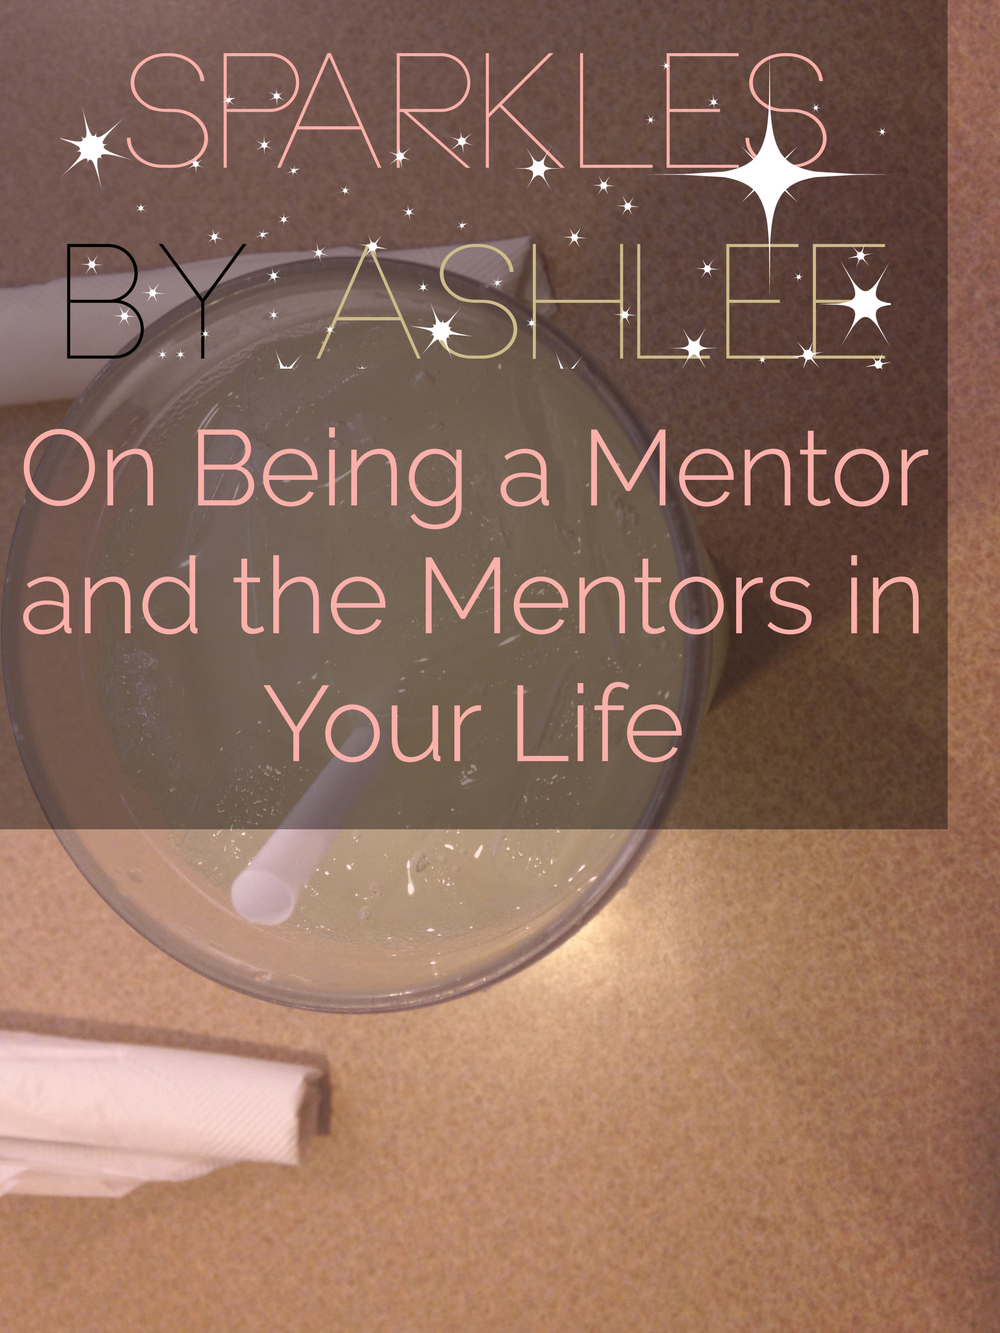 On-Being-a-Mentor-and-the-Mentors-in-Your-Life-Sparkles-by-Ashlee.jpg